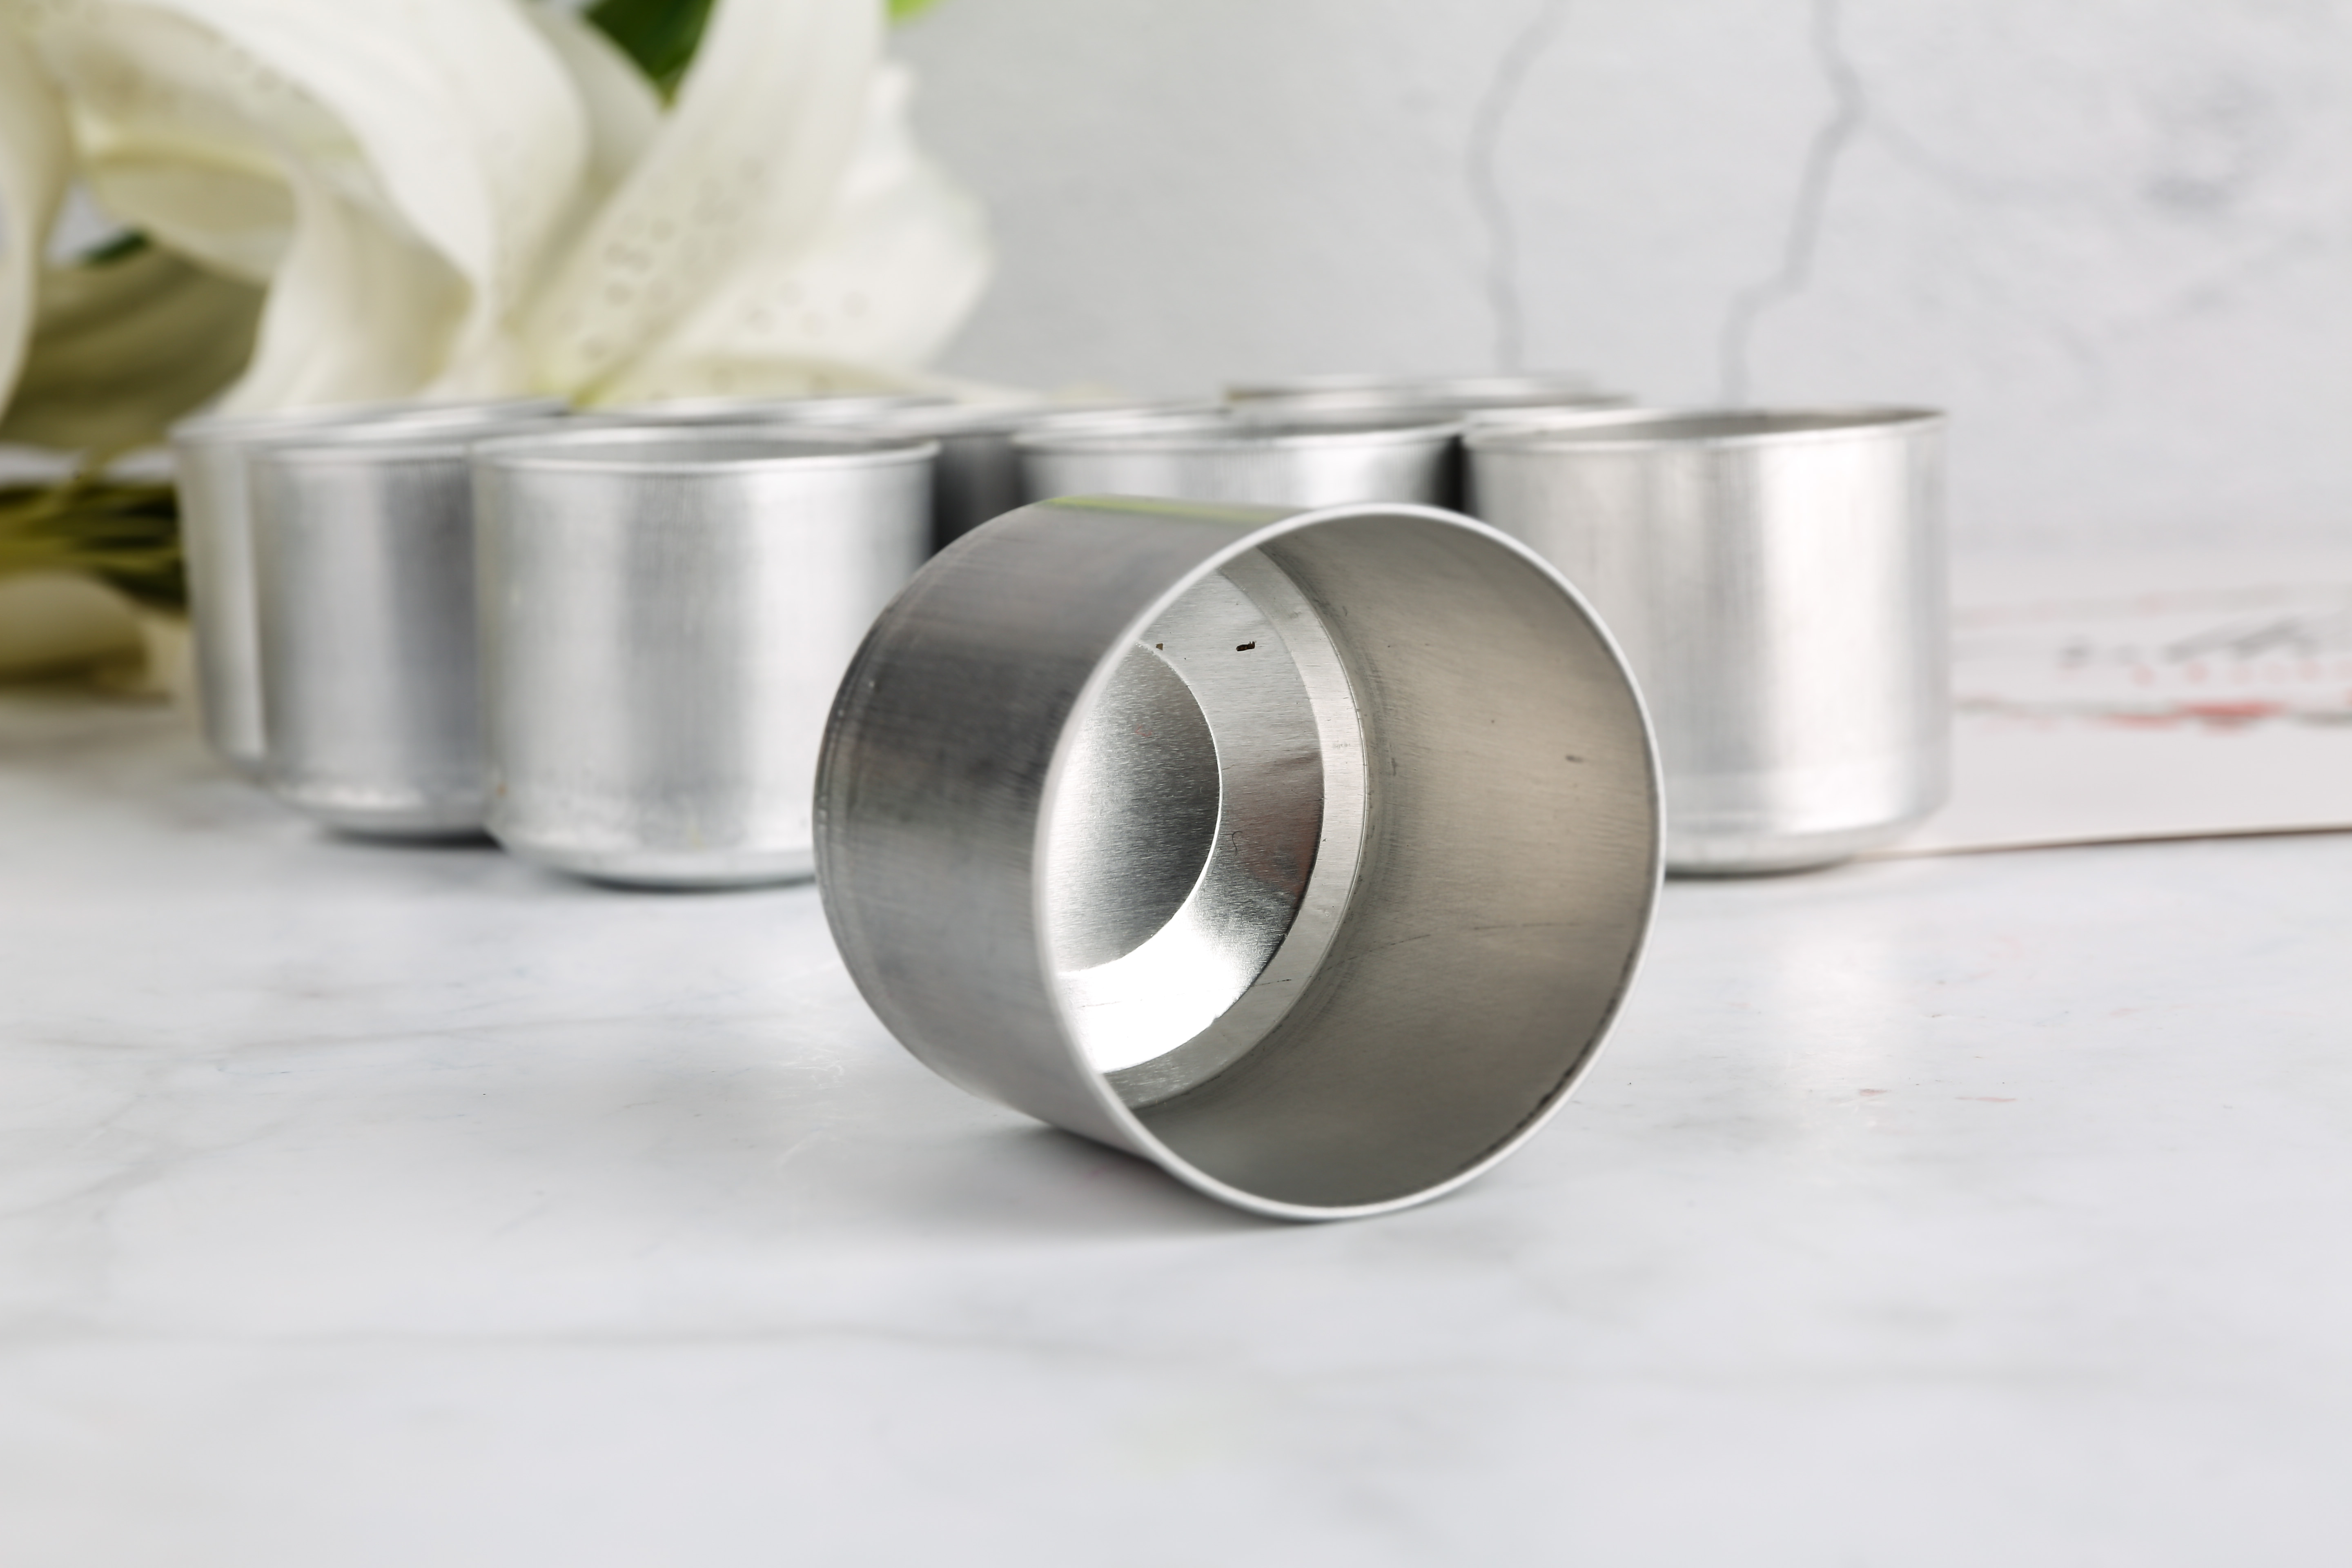 24g aluminum tealight cup for tea light candle